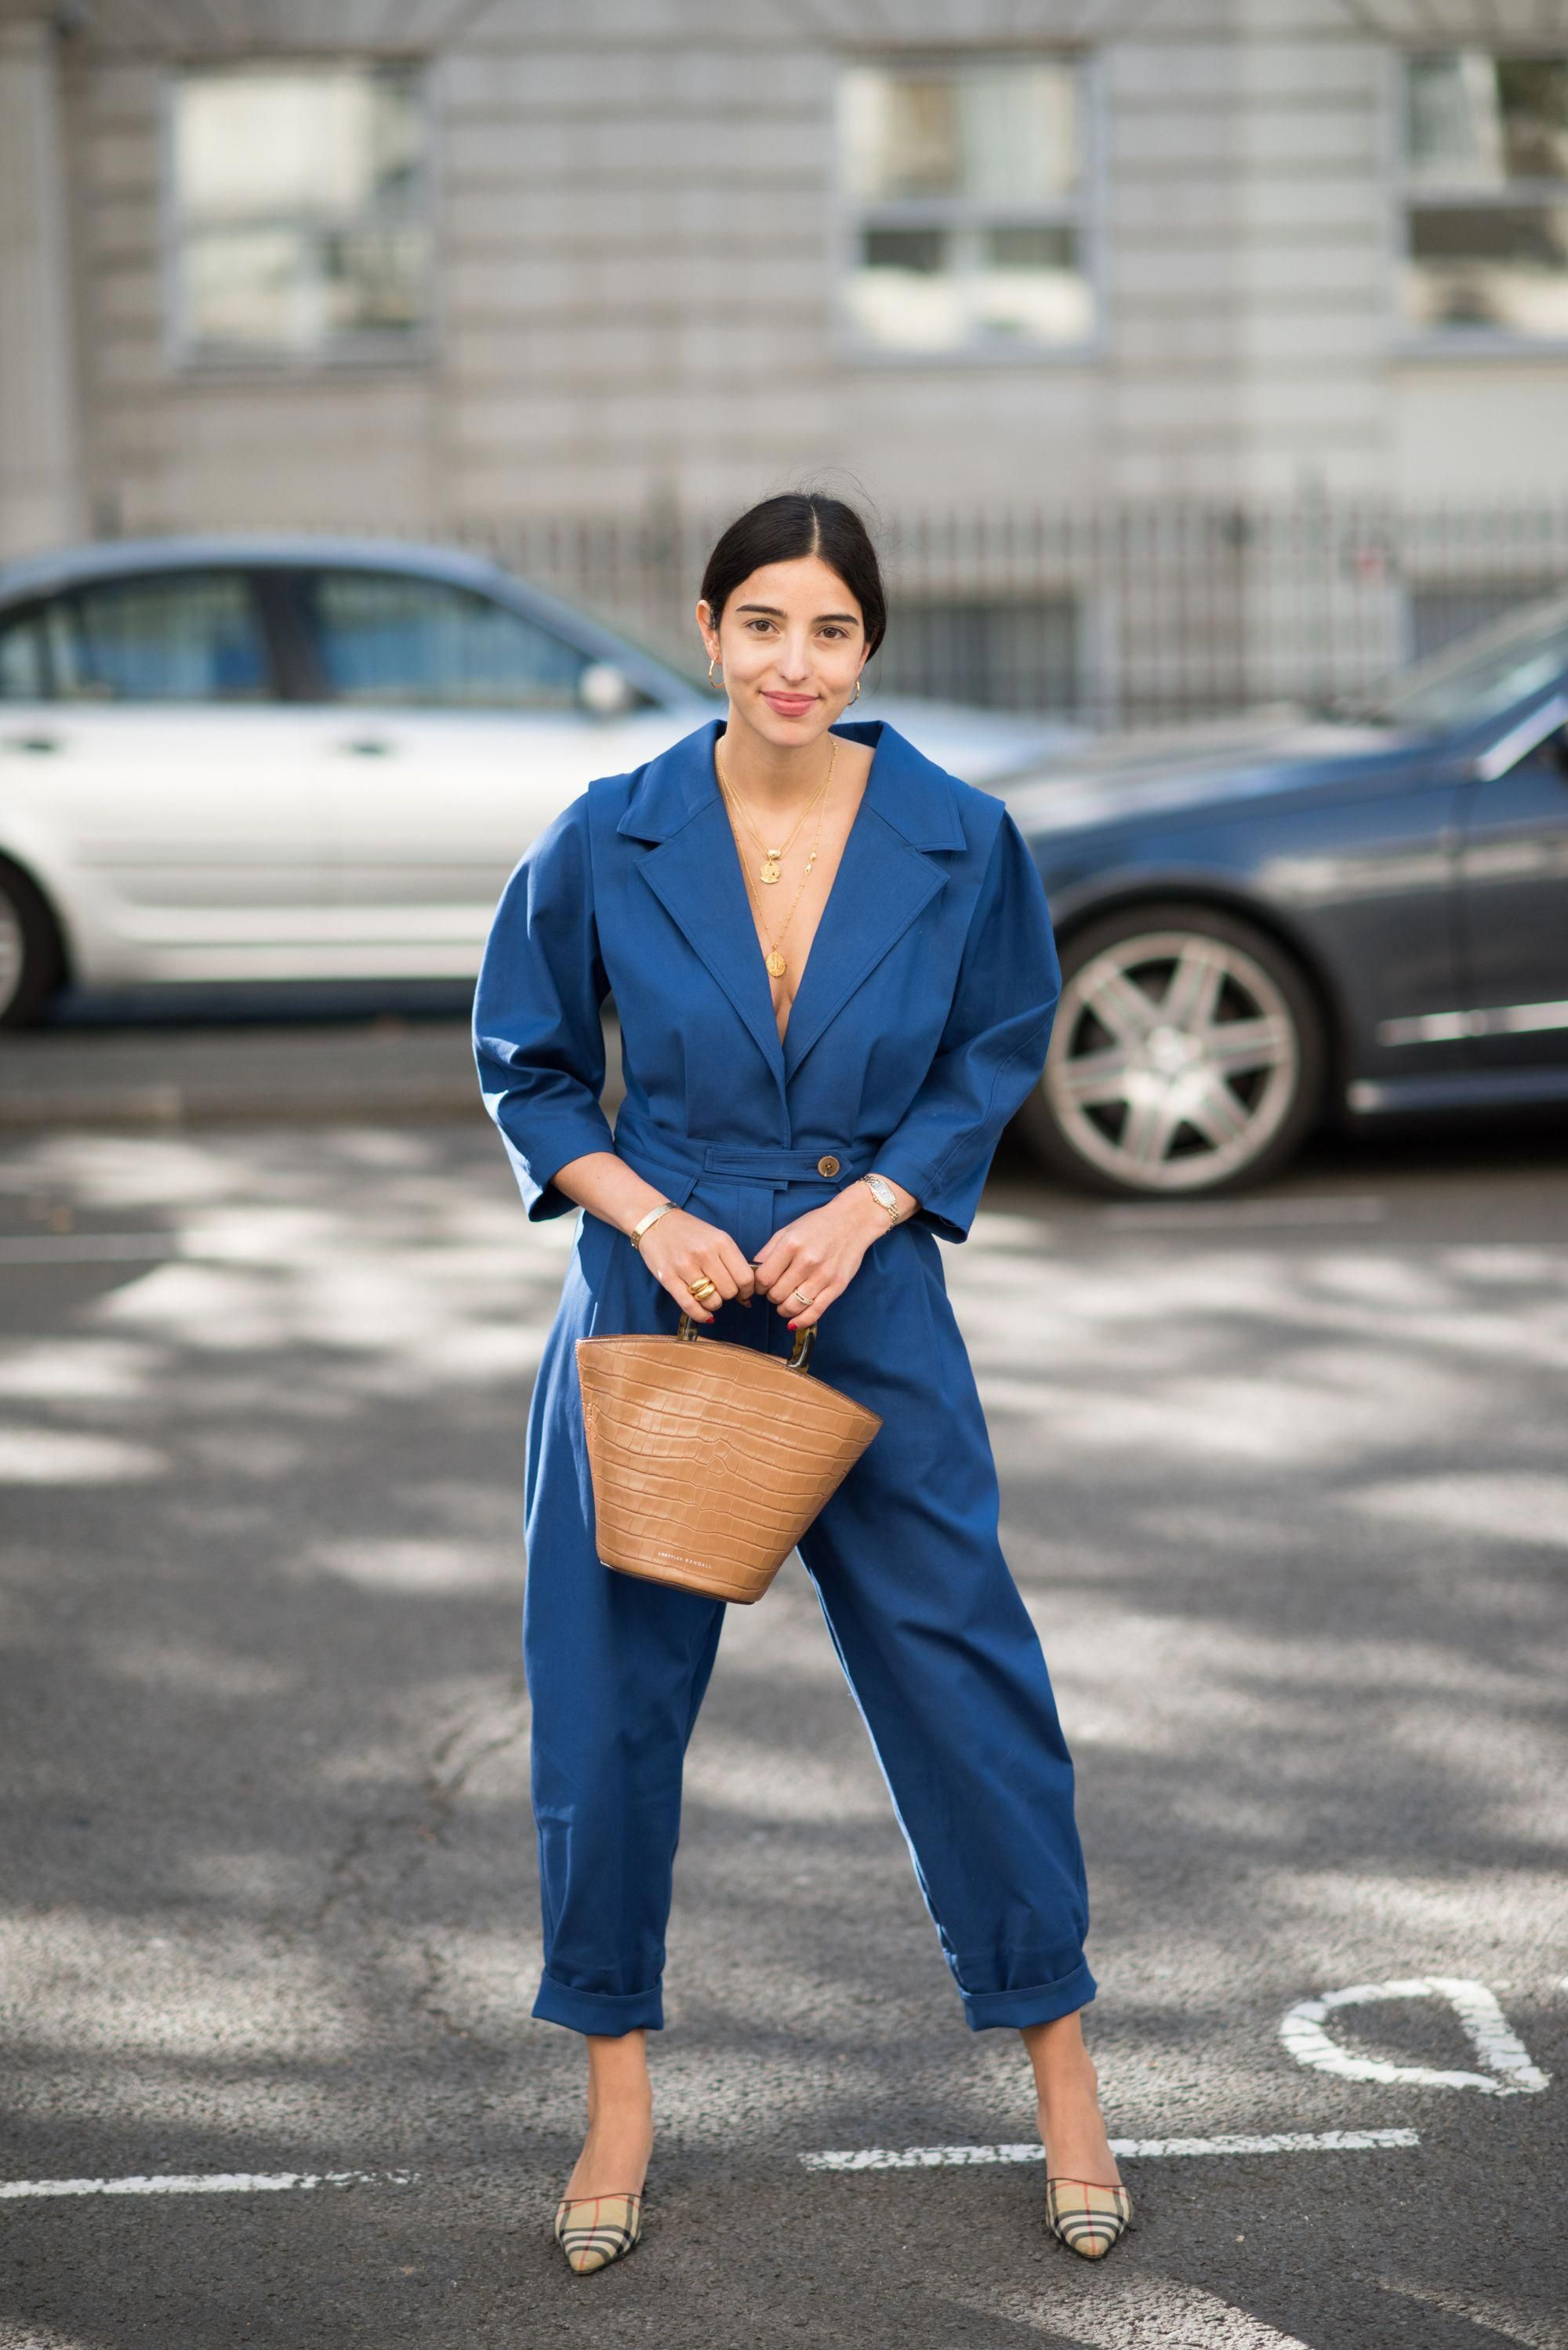 The Best London Fashion Week Street Style+#refinery29uk #streetfashiontrends #mensstreetstylesummer